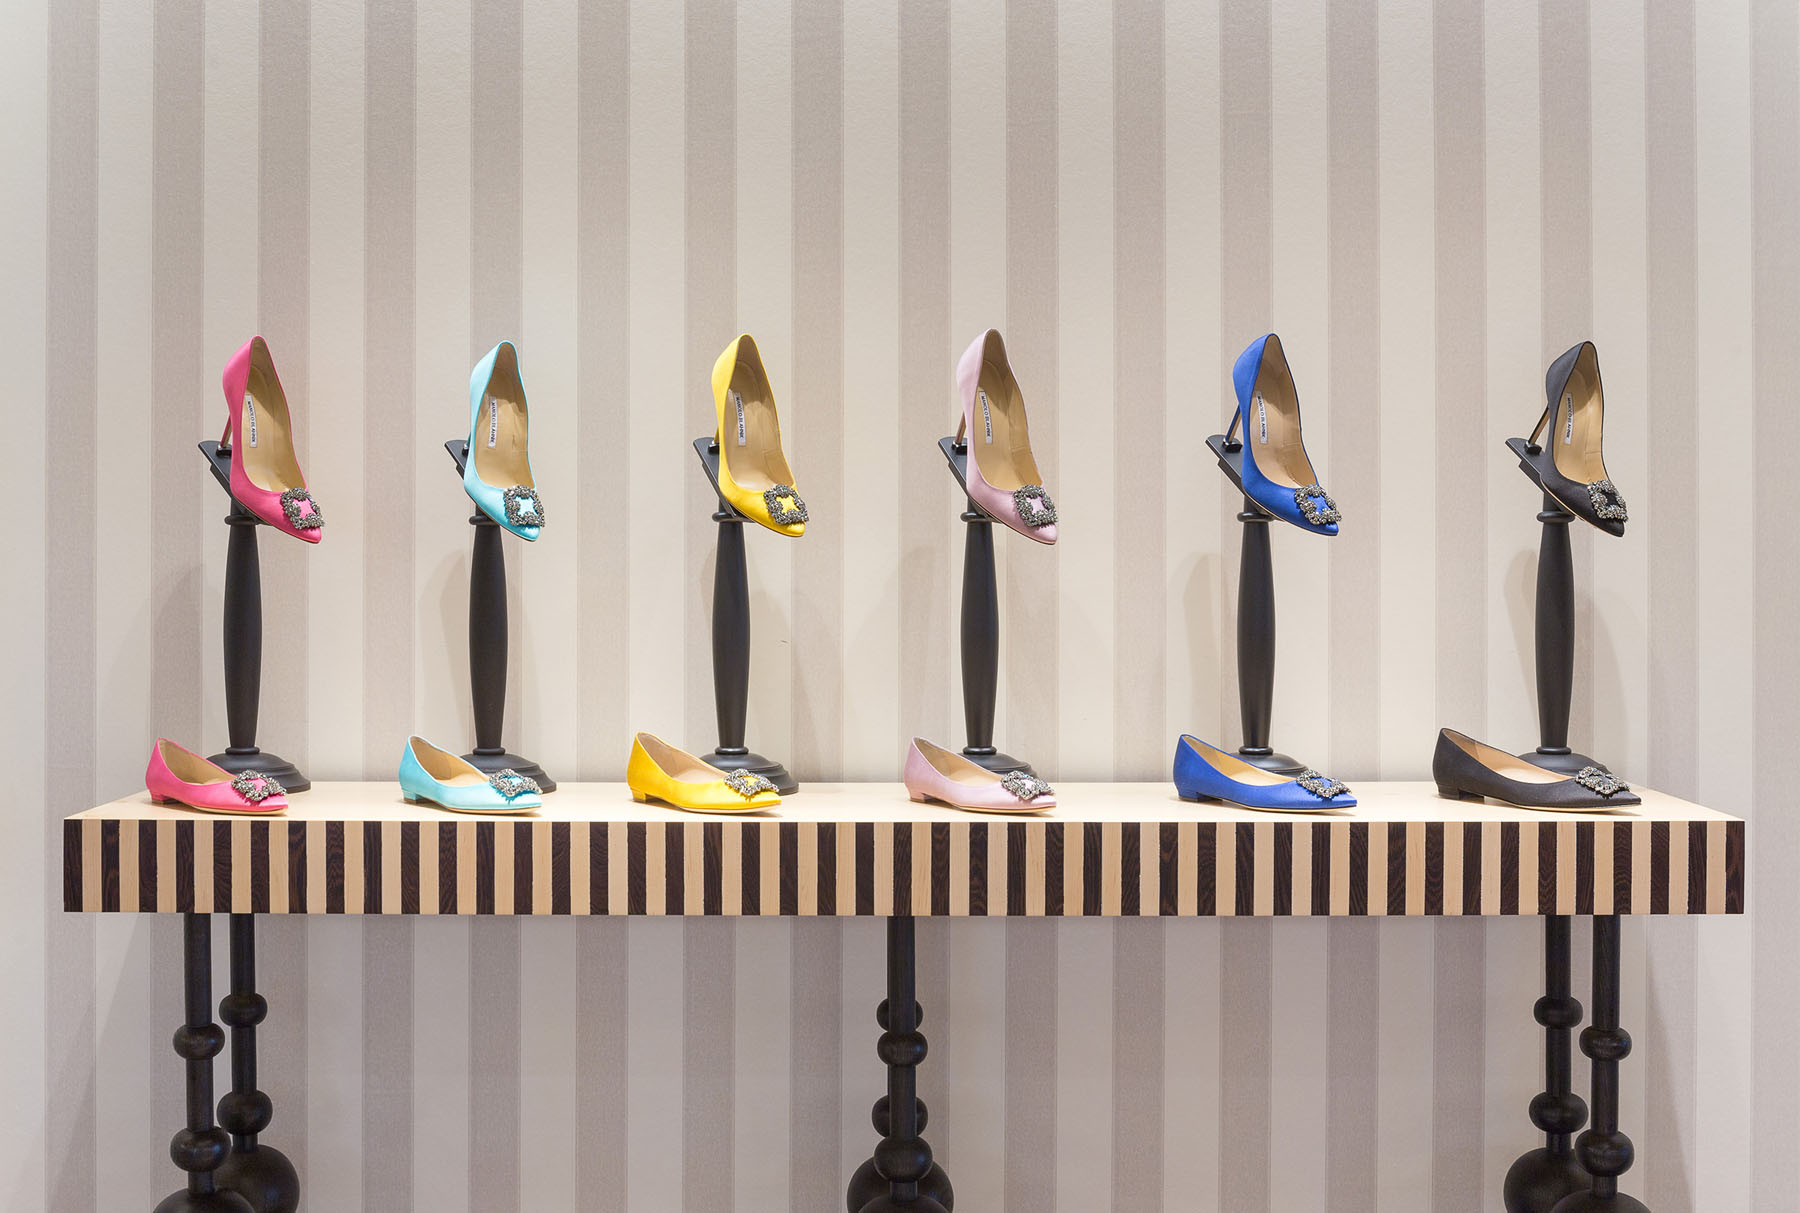 Manolo Blahnik Shoes in Bright Colors